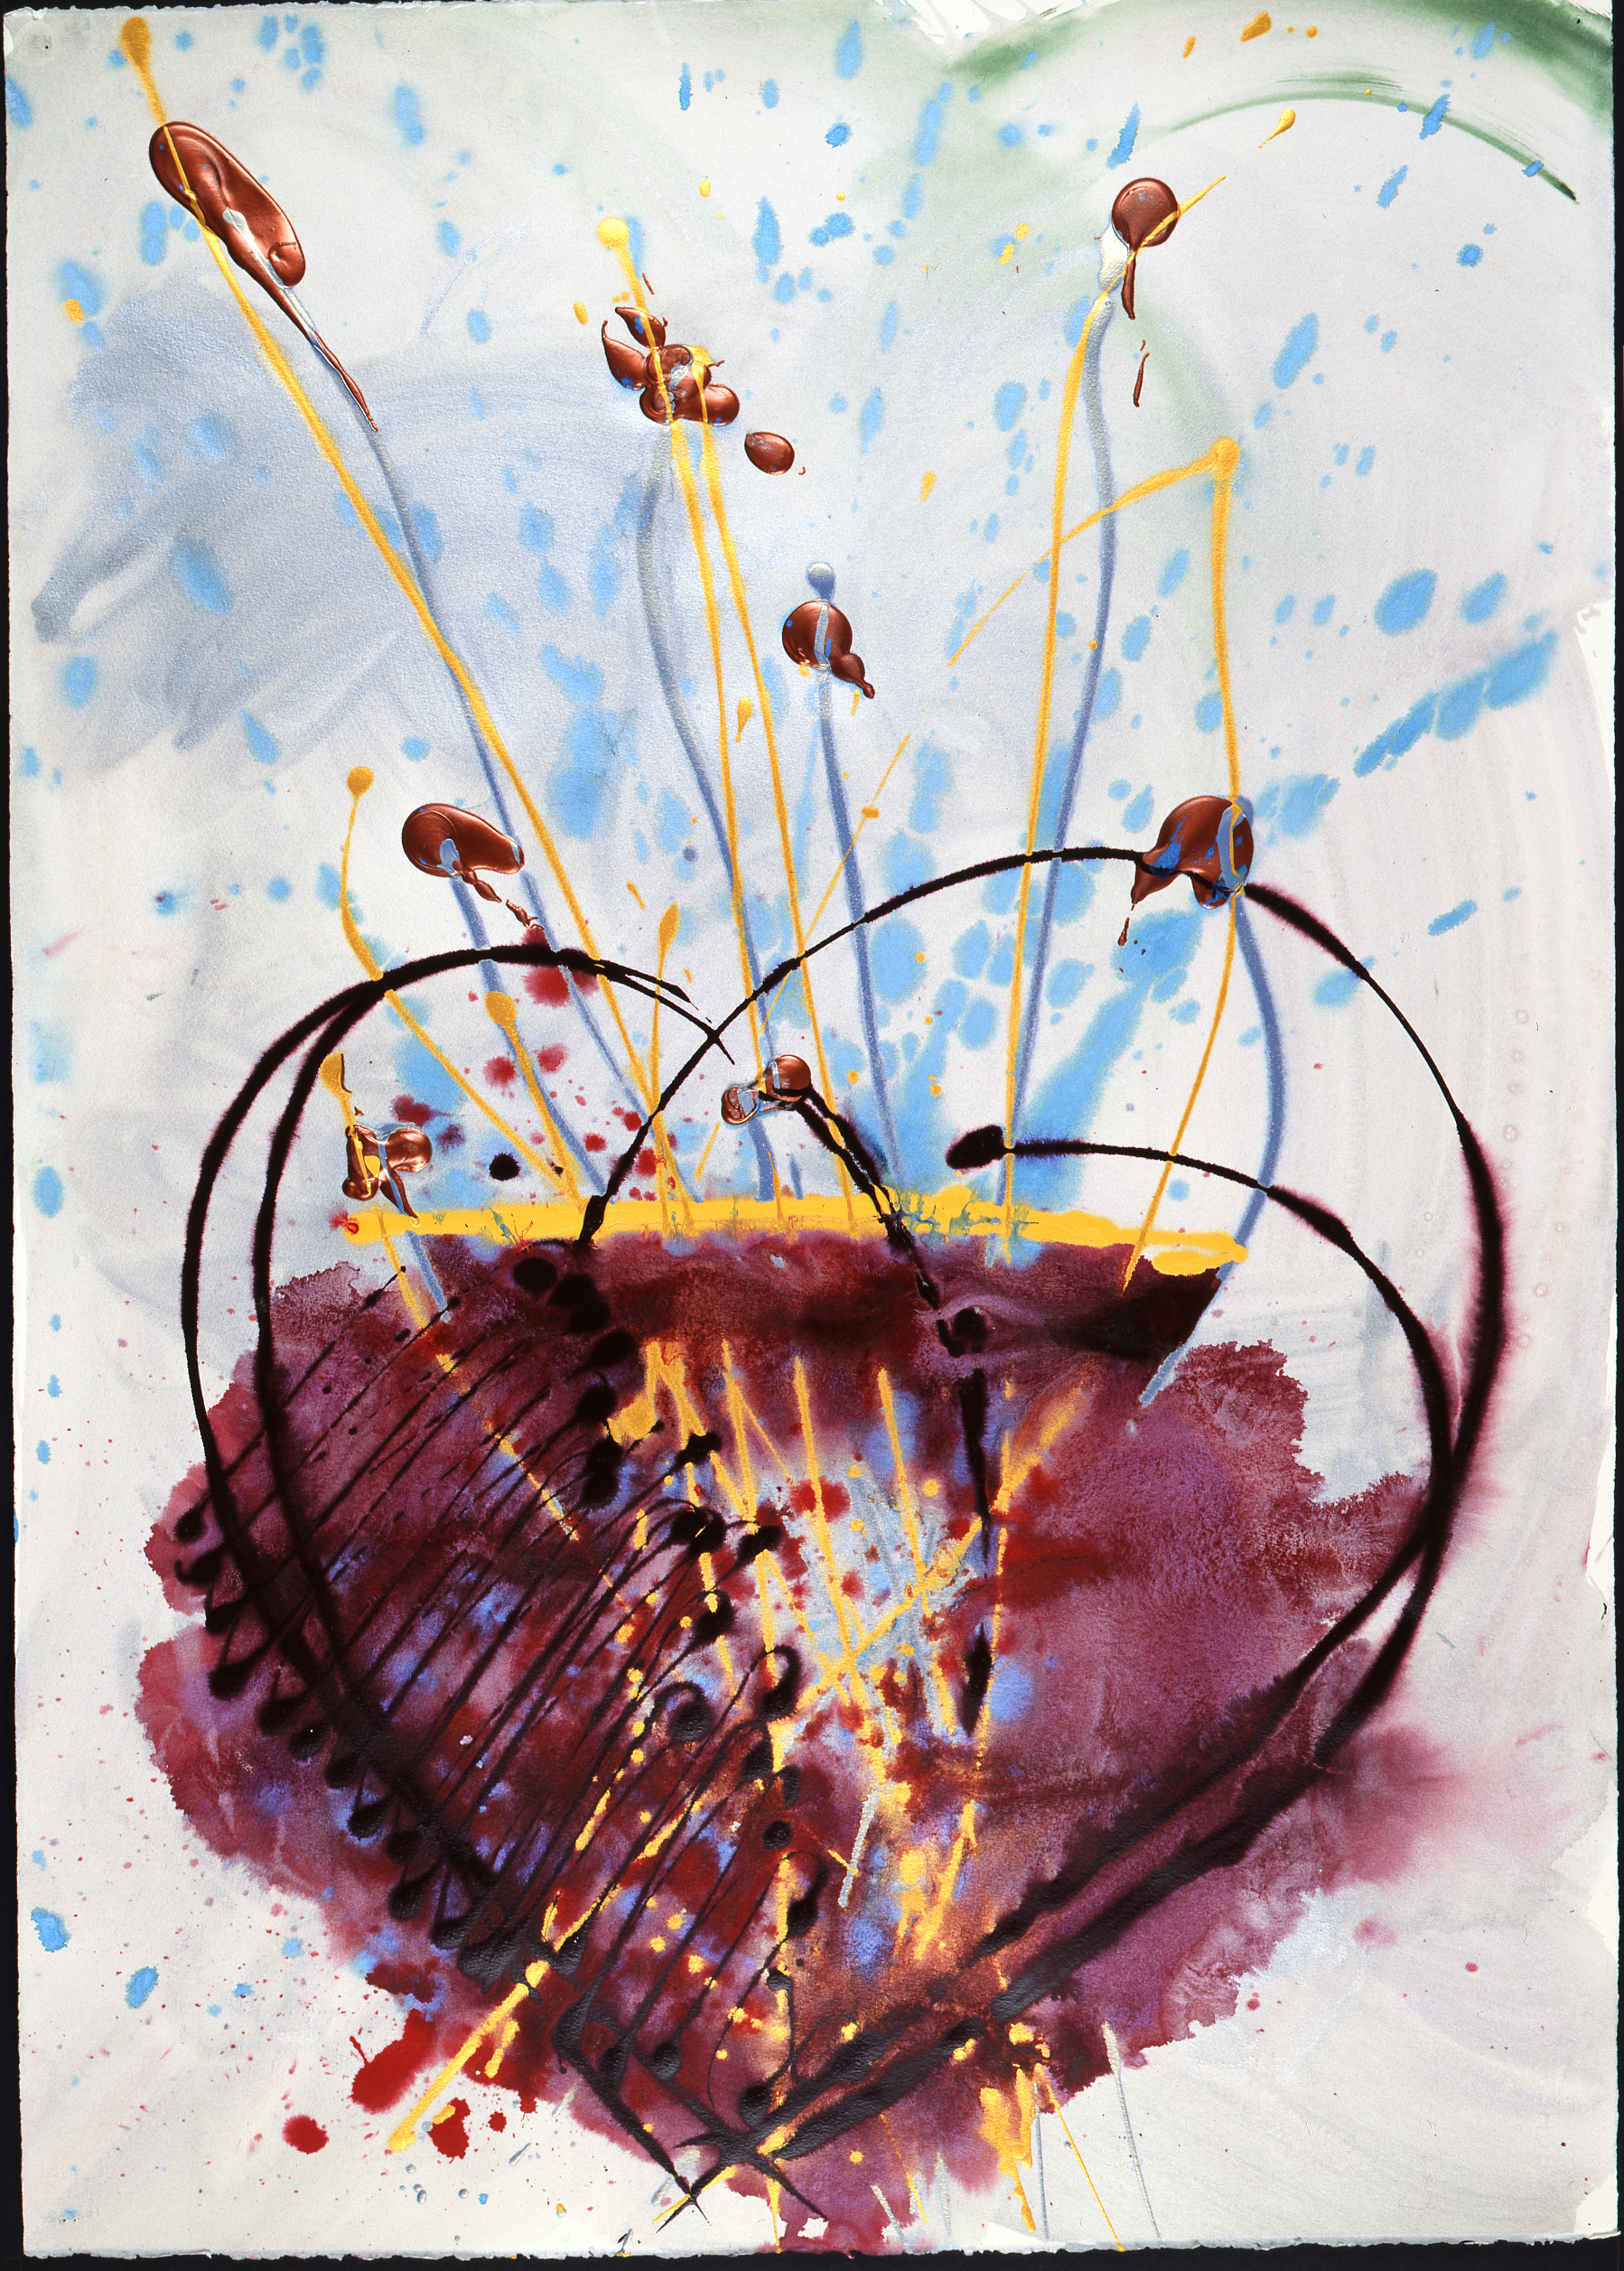 Dale Chihuly, Hawaii Drawing, (1992,41 x 29 inches), DC.382